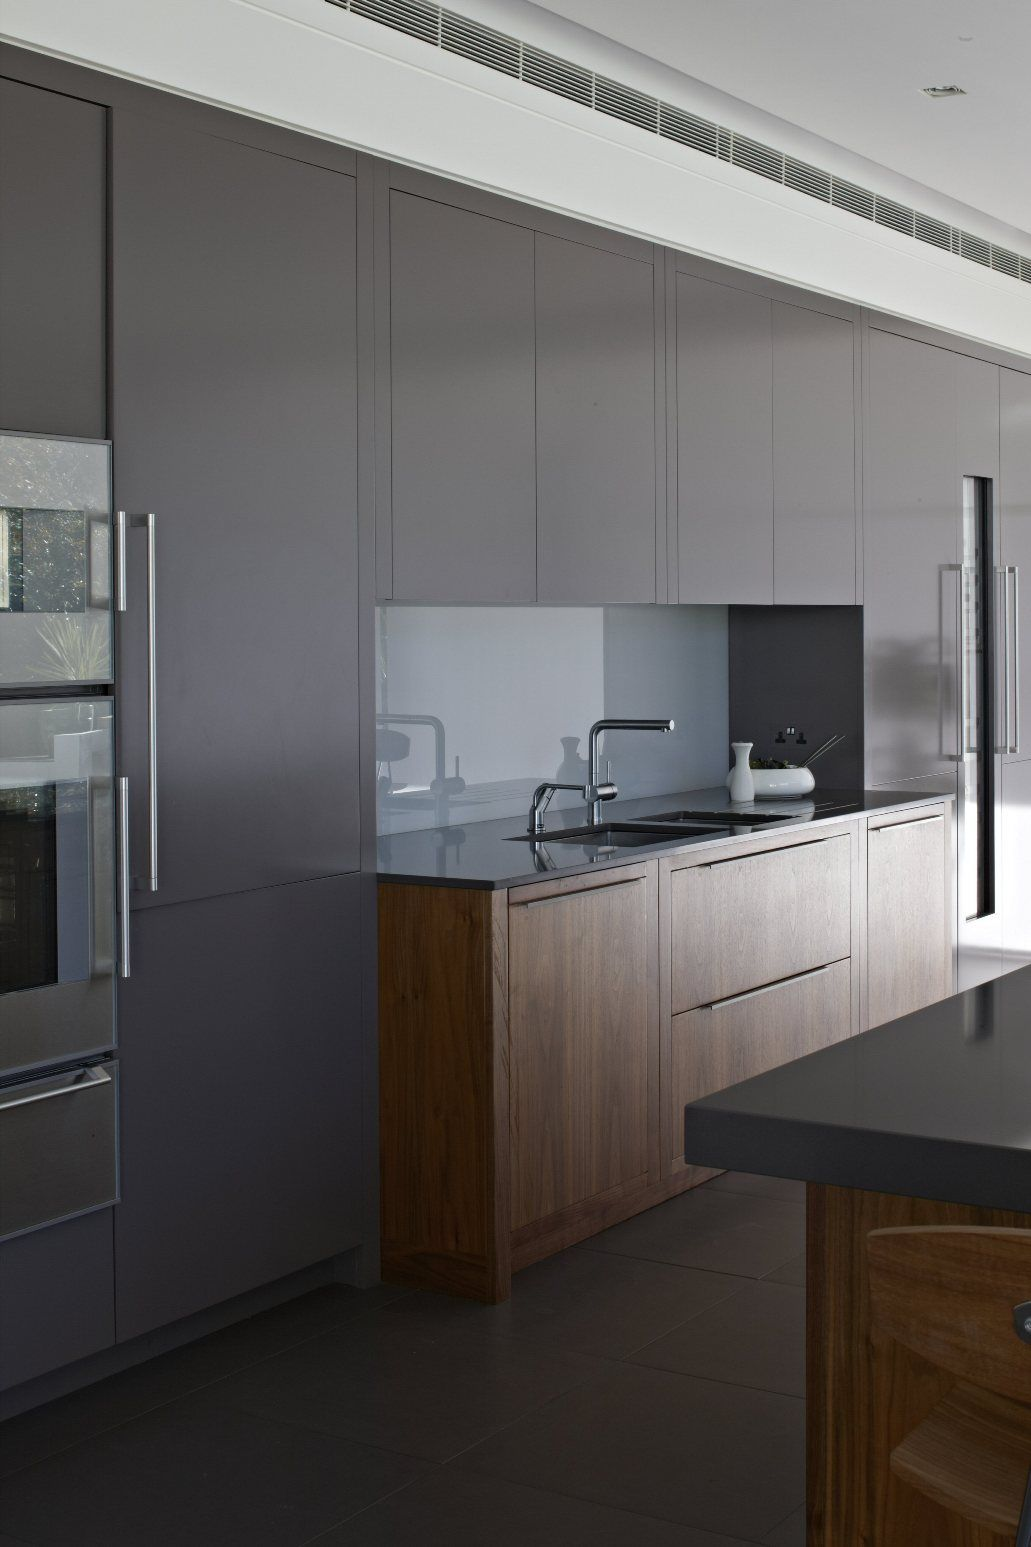 Chamber Furniture designed and manufactured the Kitchen